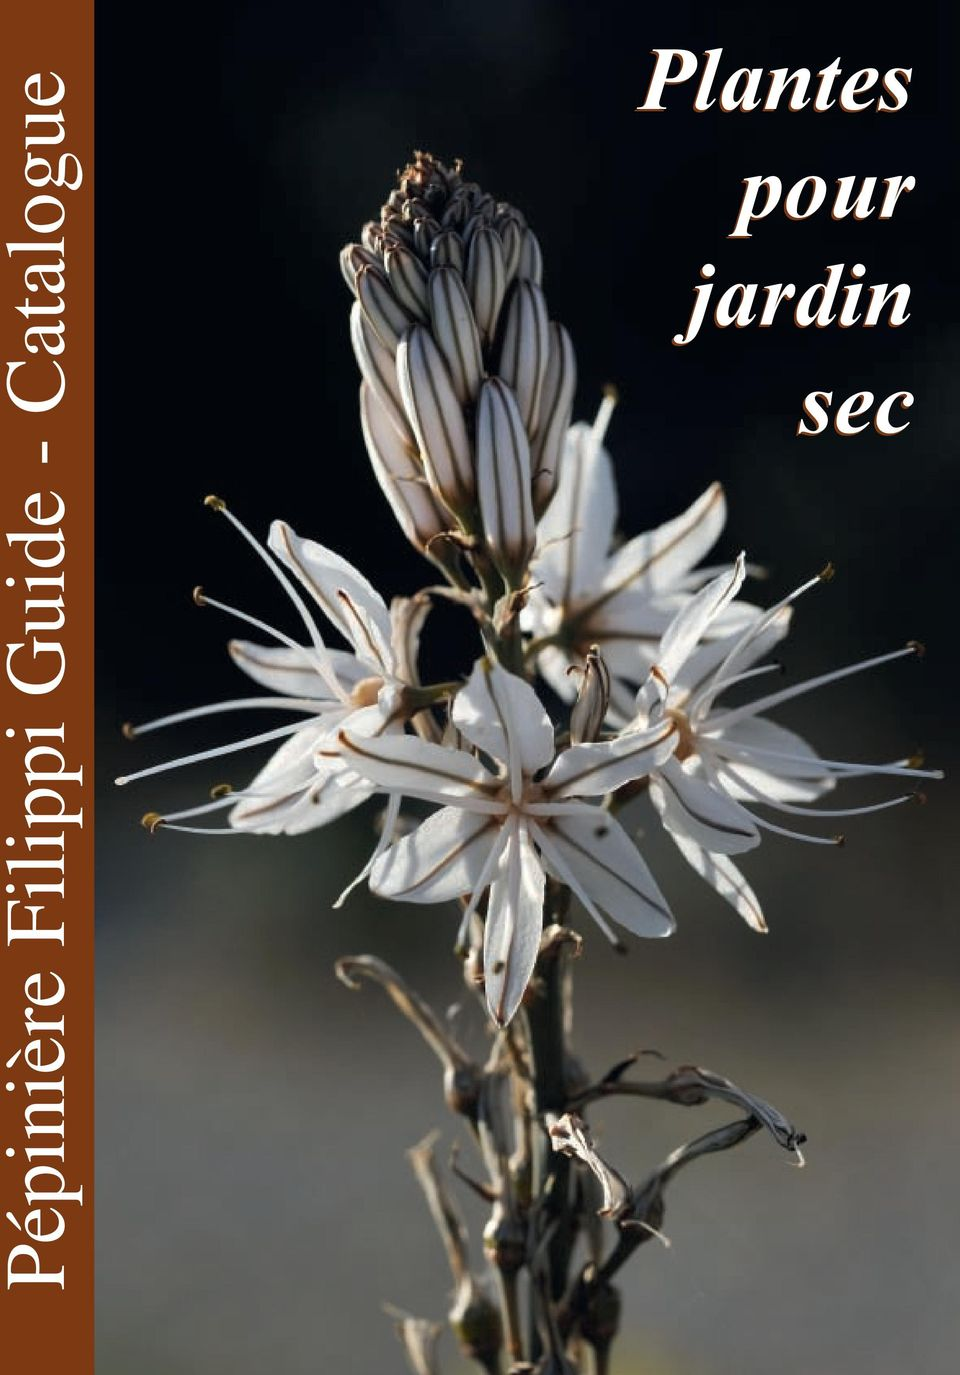 P pini re filippi guide catalogue plantes pour jardin for Catalogue plantes jardin